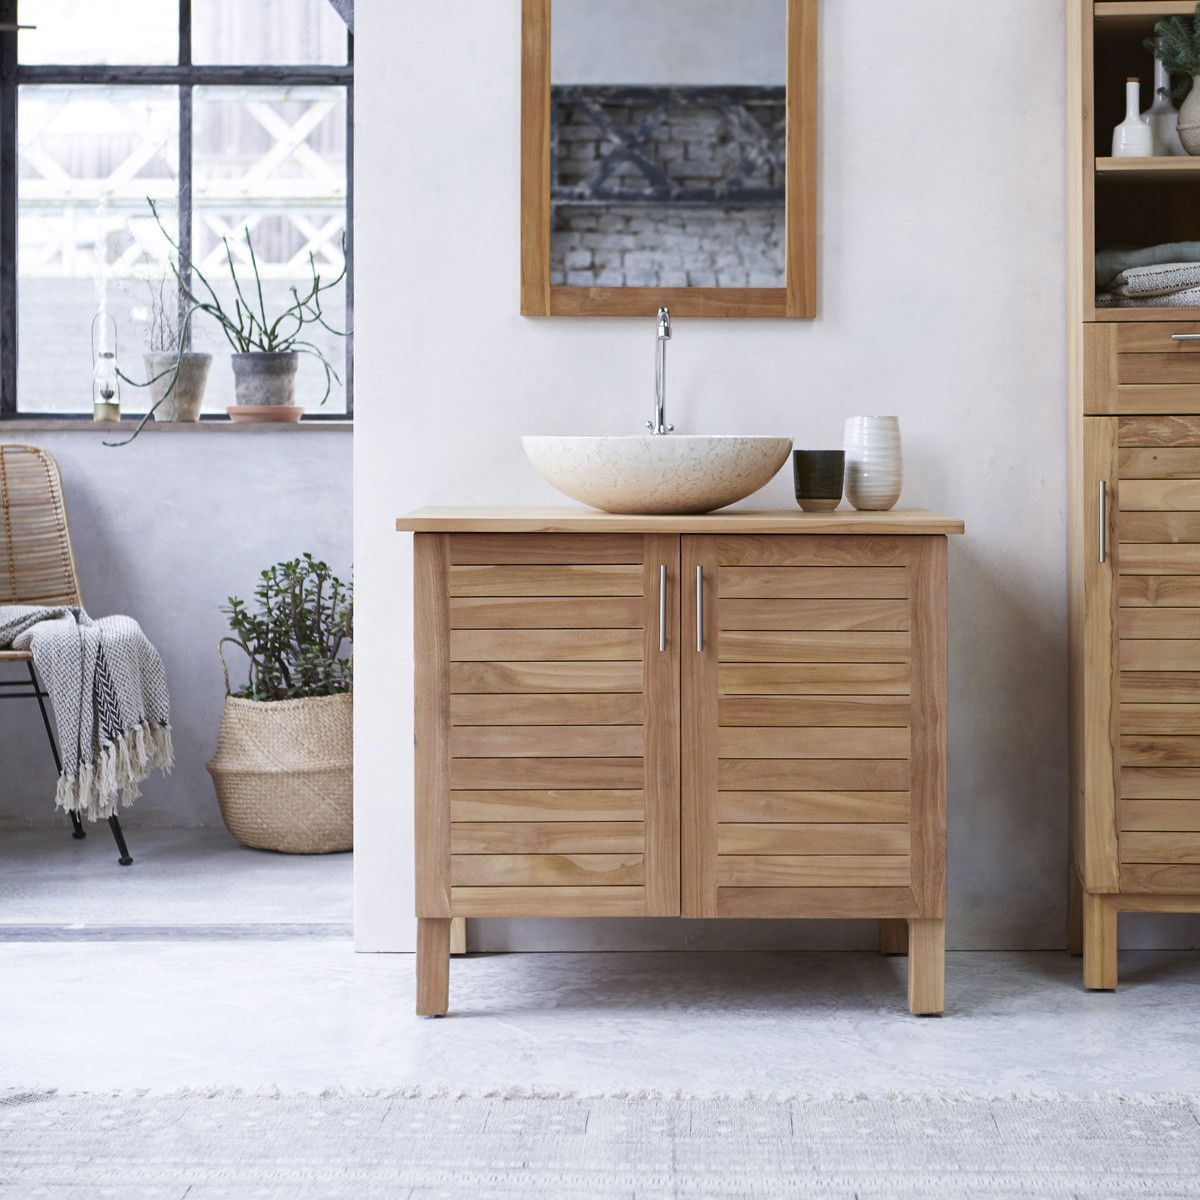 Massiver Teakholz Waschtischunterschrank Waschtisch Einfaches Warmes Design New Tikamoon In 2020 Teak Bathroom Wood Vanity Tikamoon